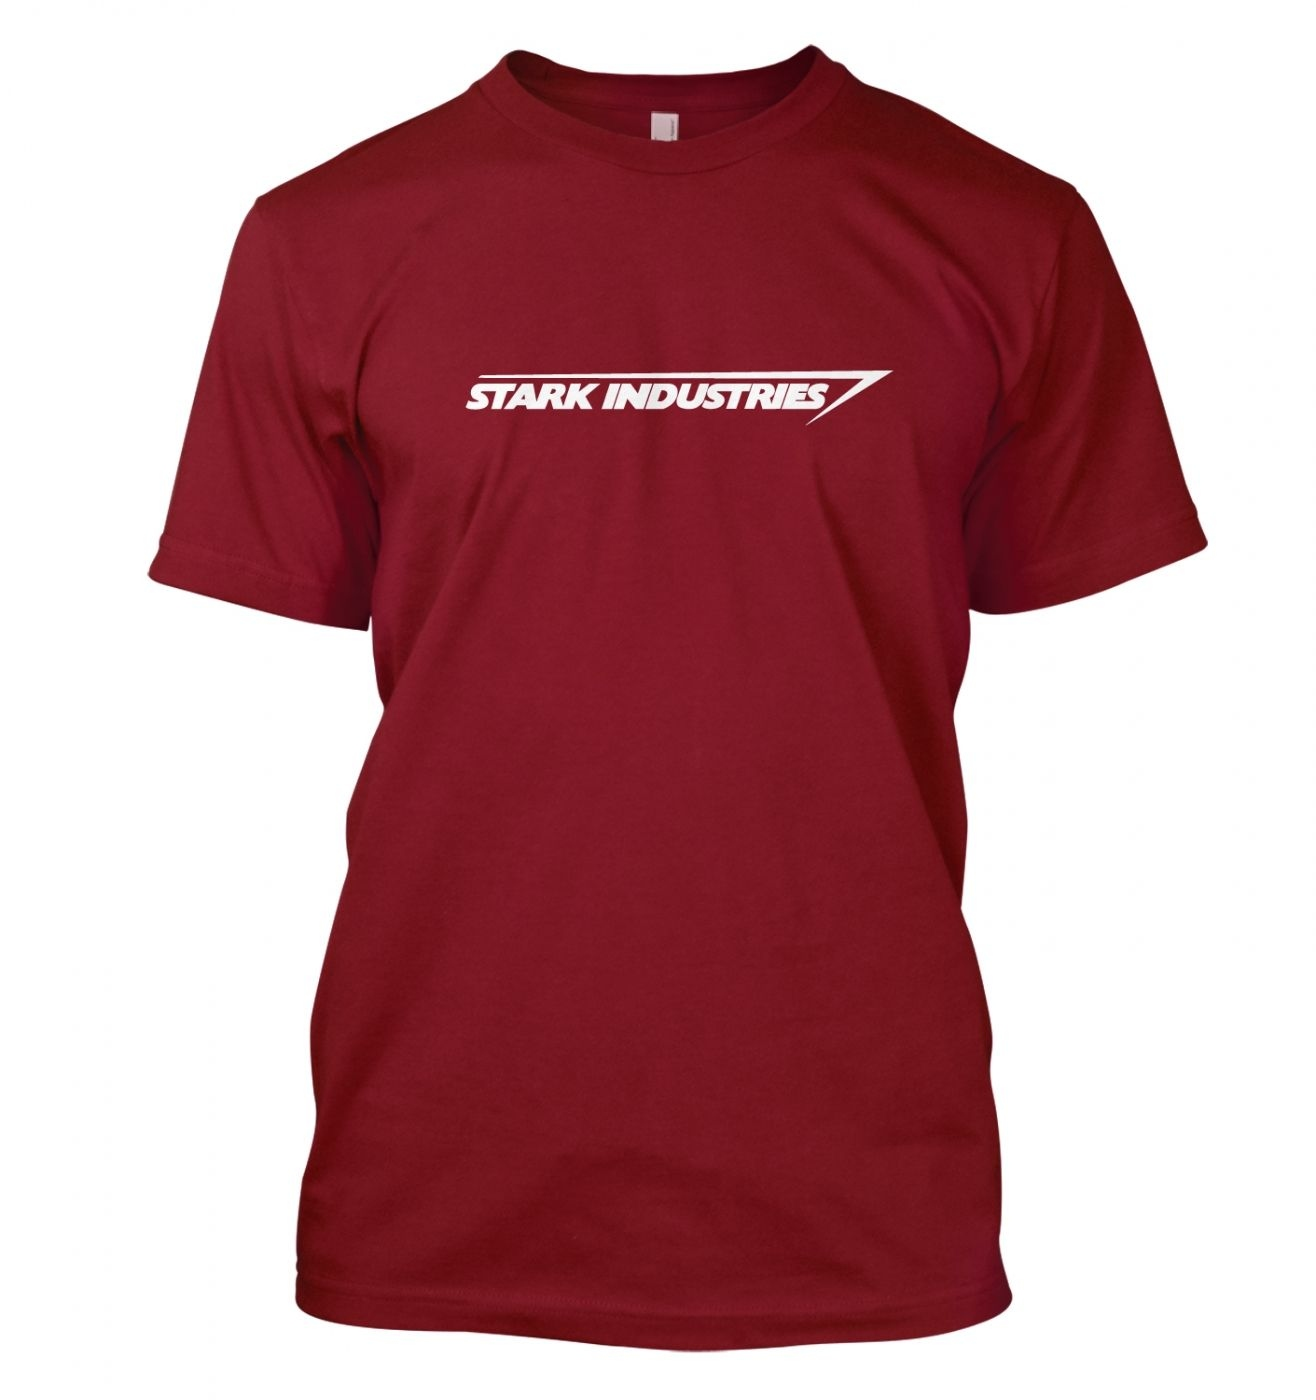 Stark Industries men's t-shirt